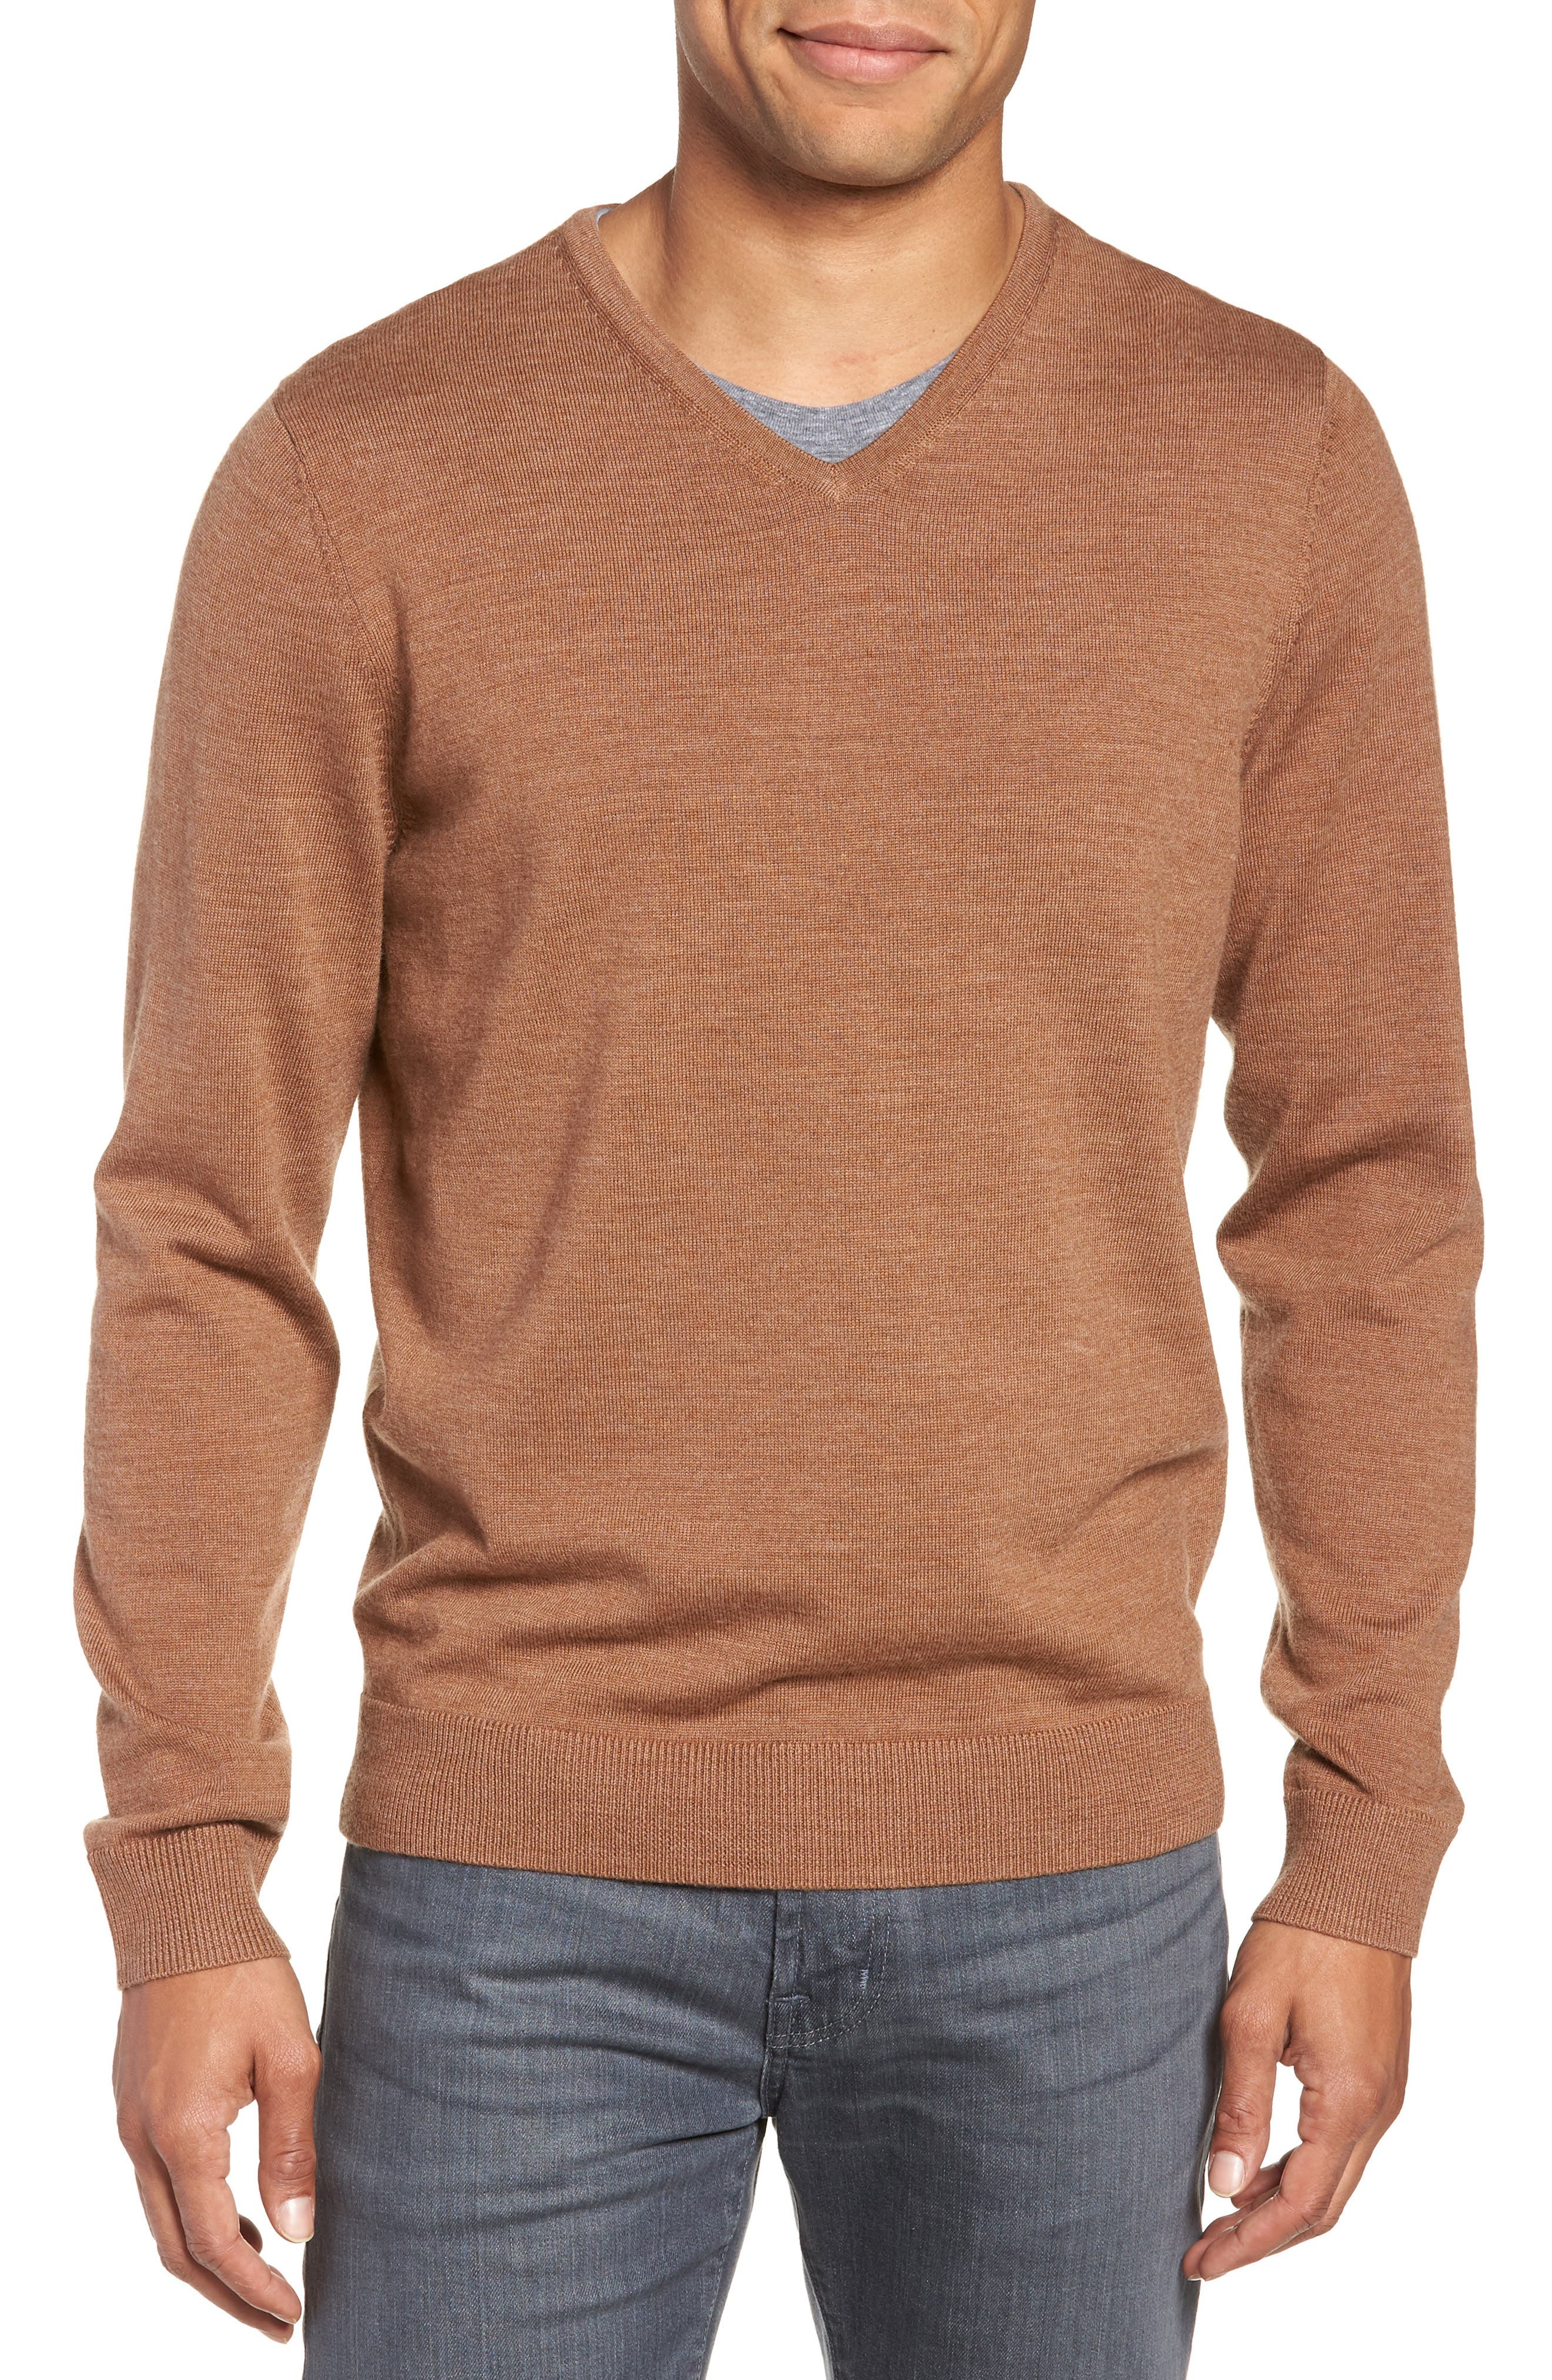 Nordstrom Shop Washable Merino Wool V-Neck Sweater, Brown